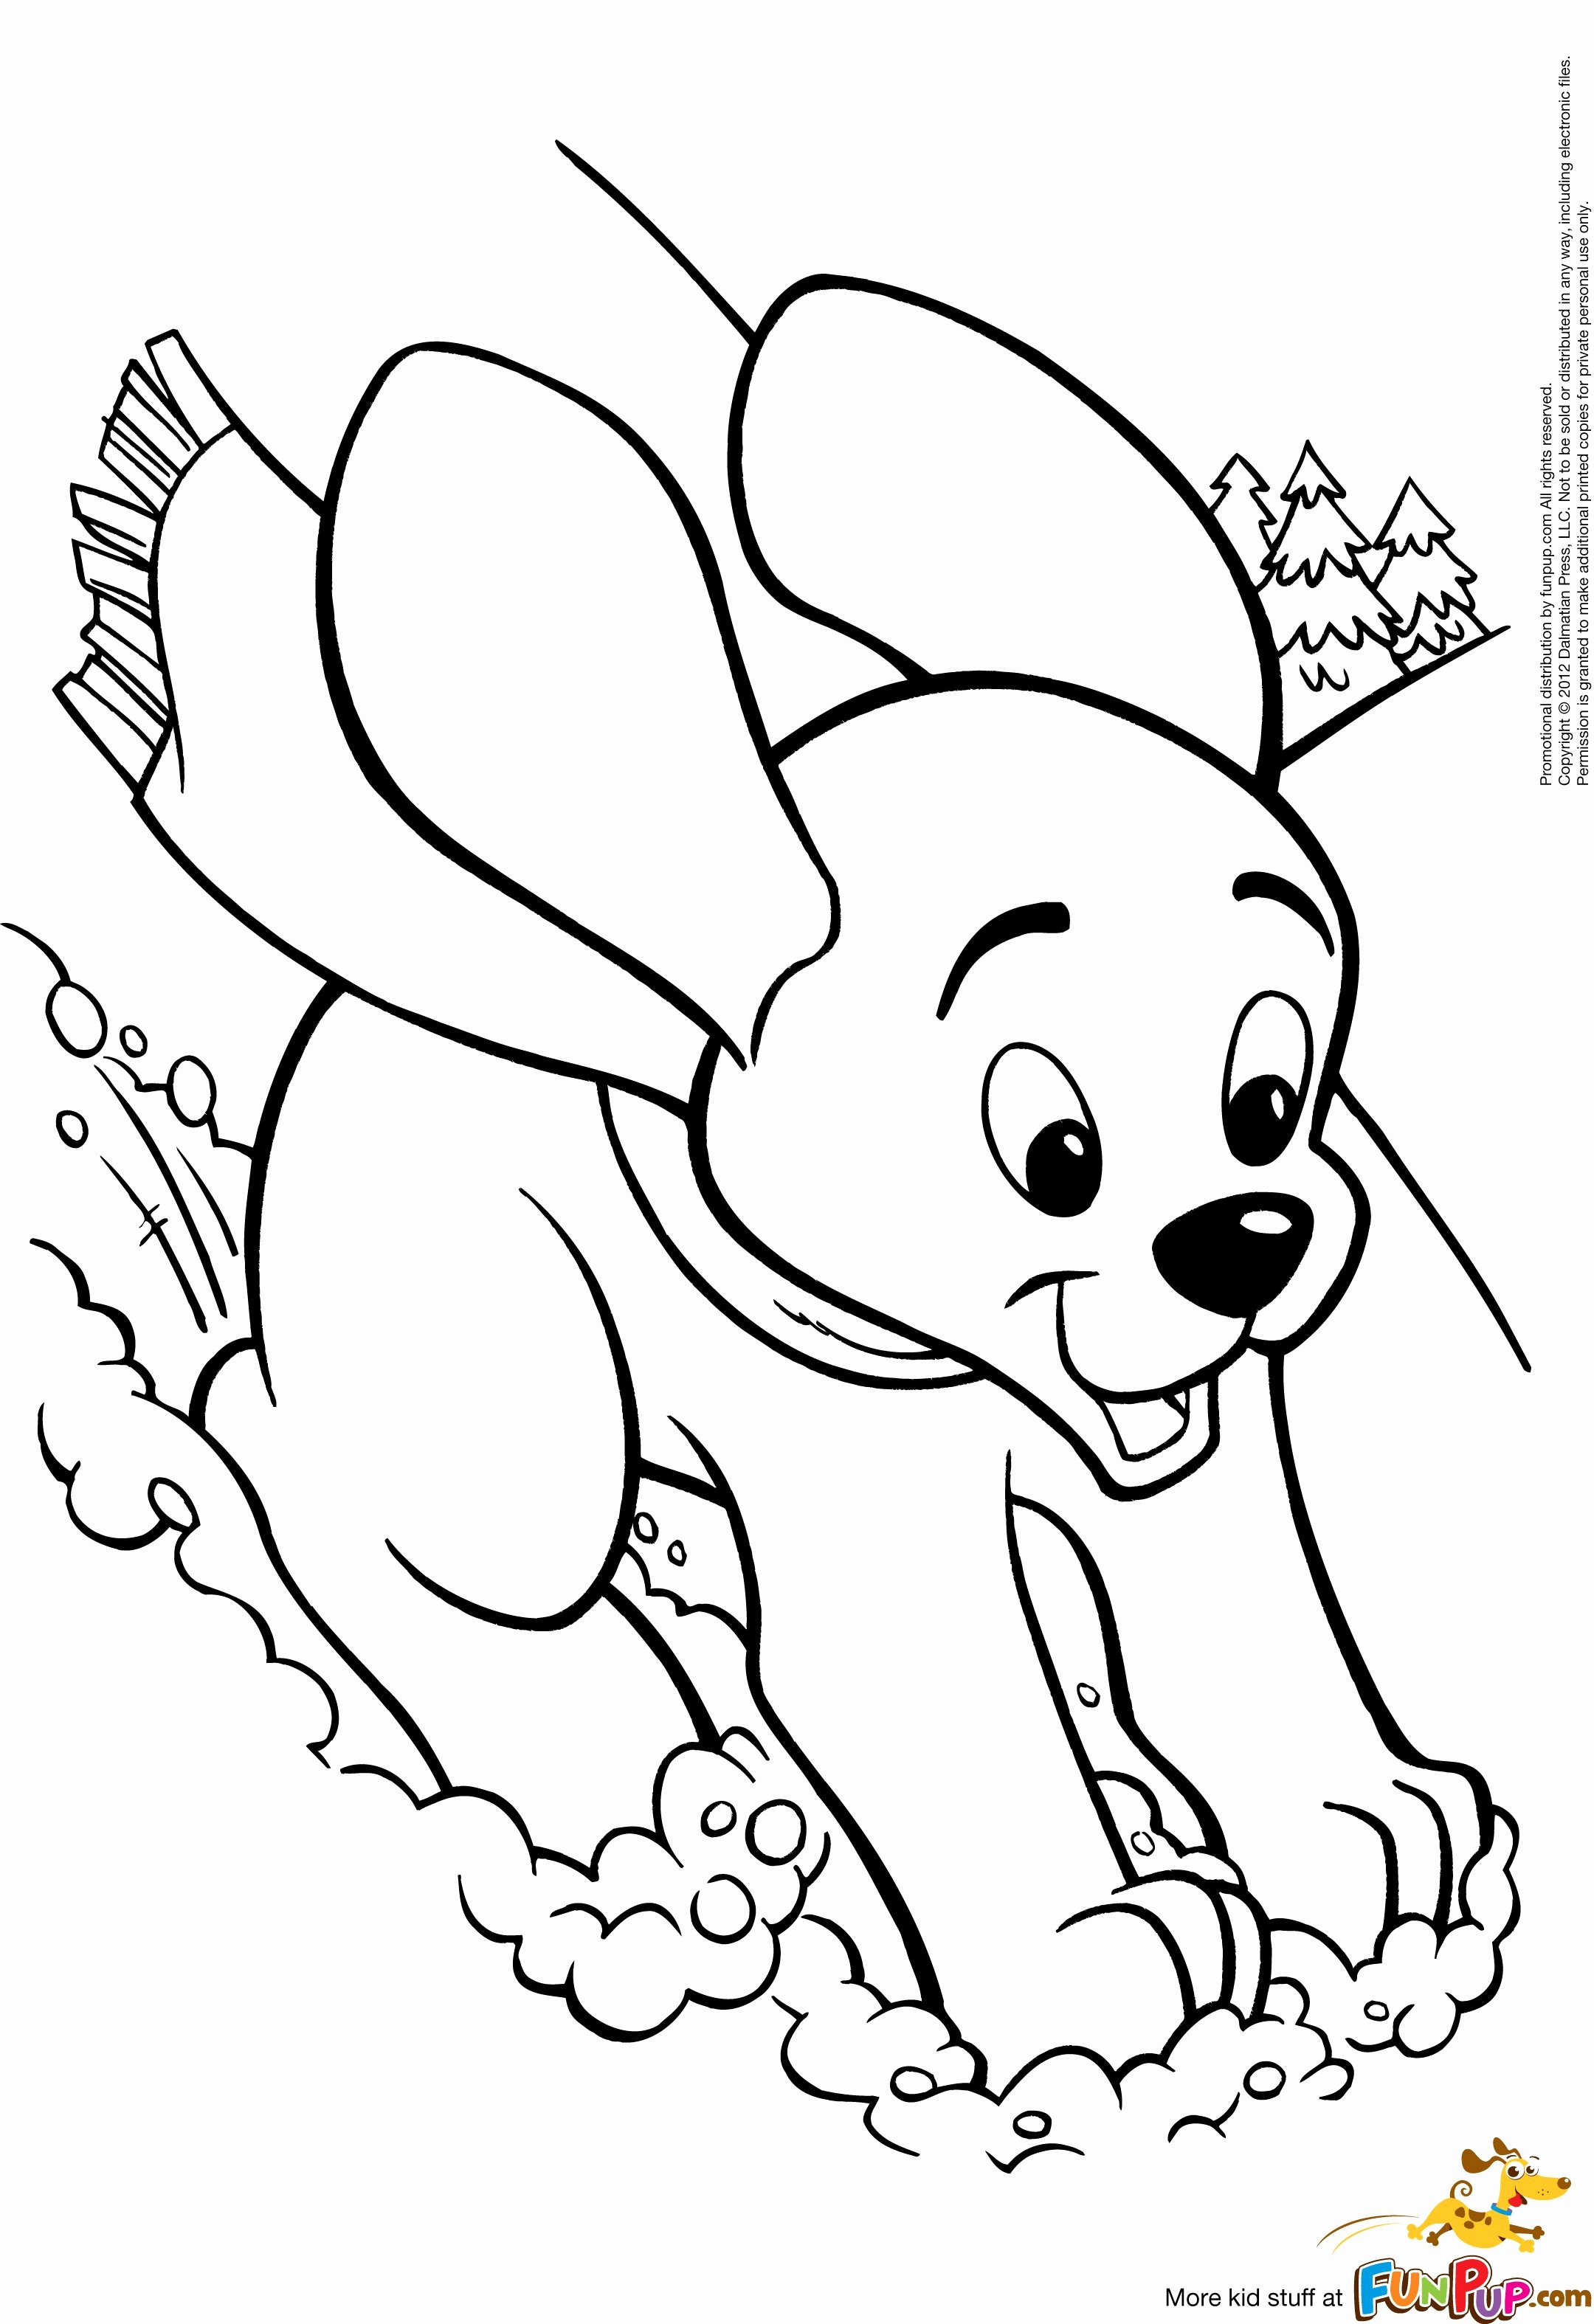 Coloring Pages Of Puppies Luxury Puppy Coloring Pages Bestofcoloring